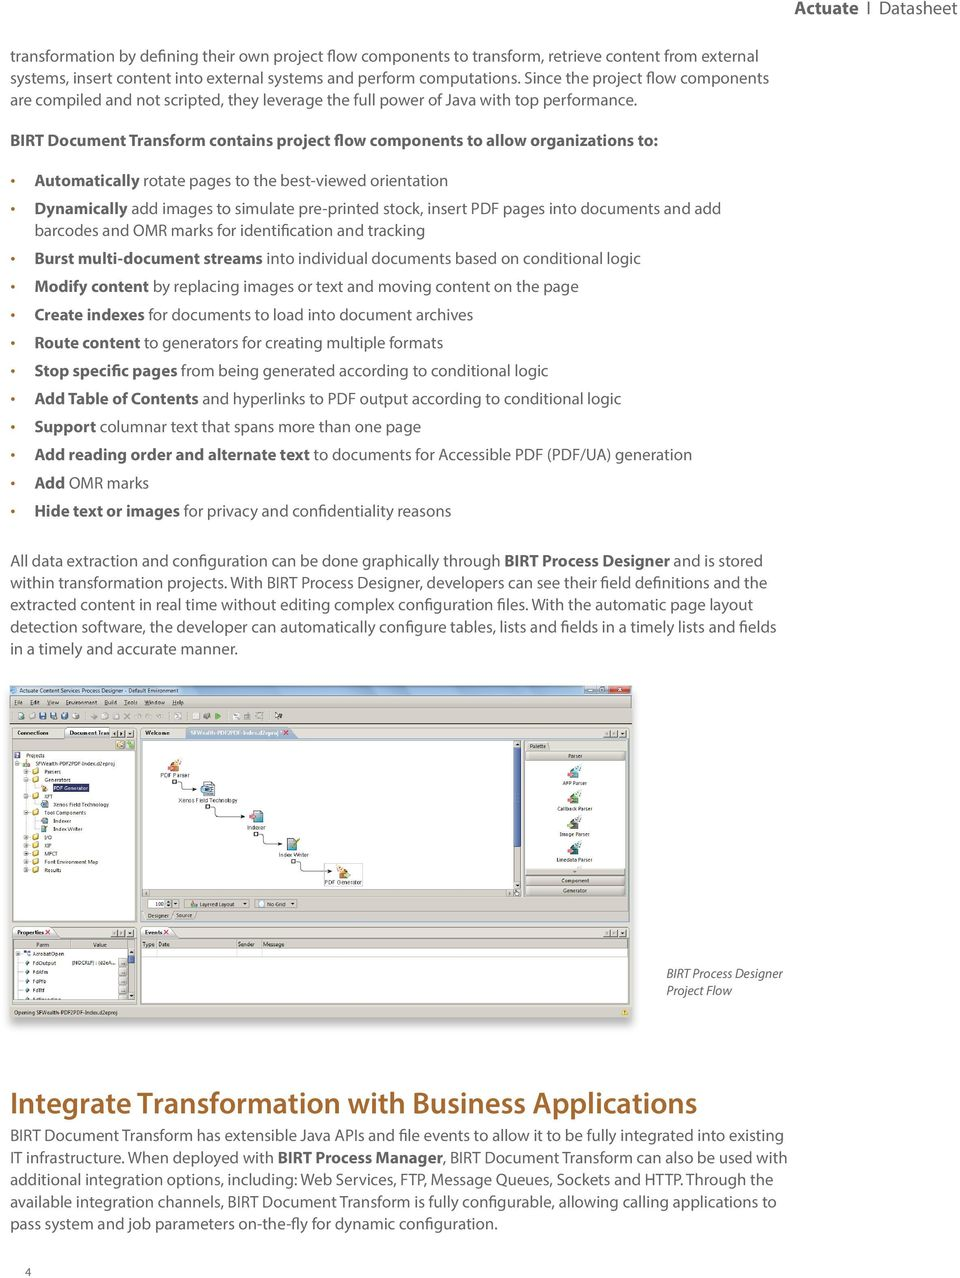 BIRT Document Transform contains project flow components to allow organizations to: Automatically rotate pages to the best-viewed orientation Dynamically add images to simulate pre-printed stock,